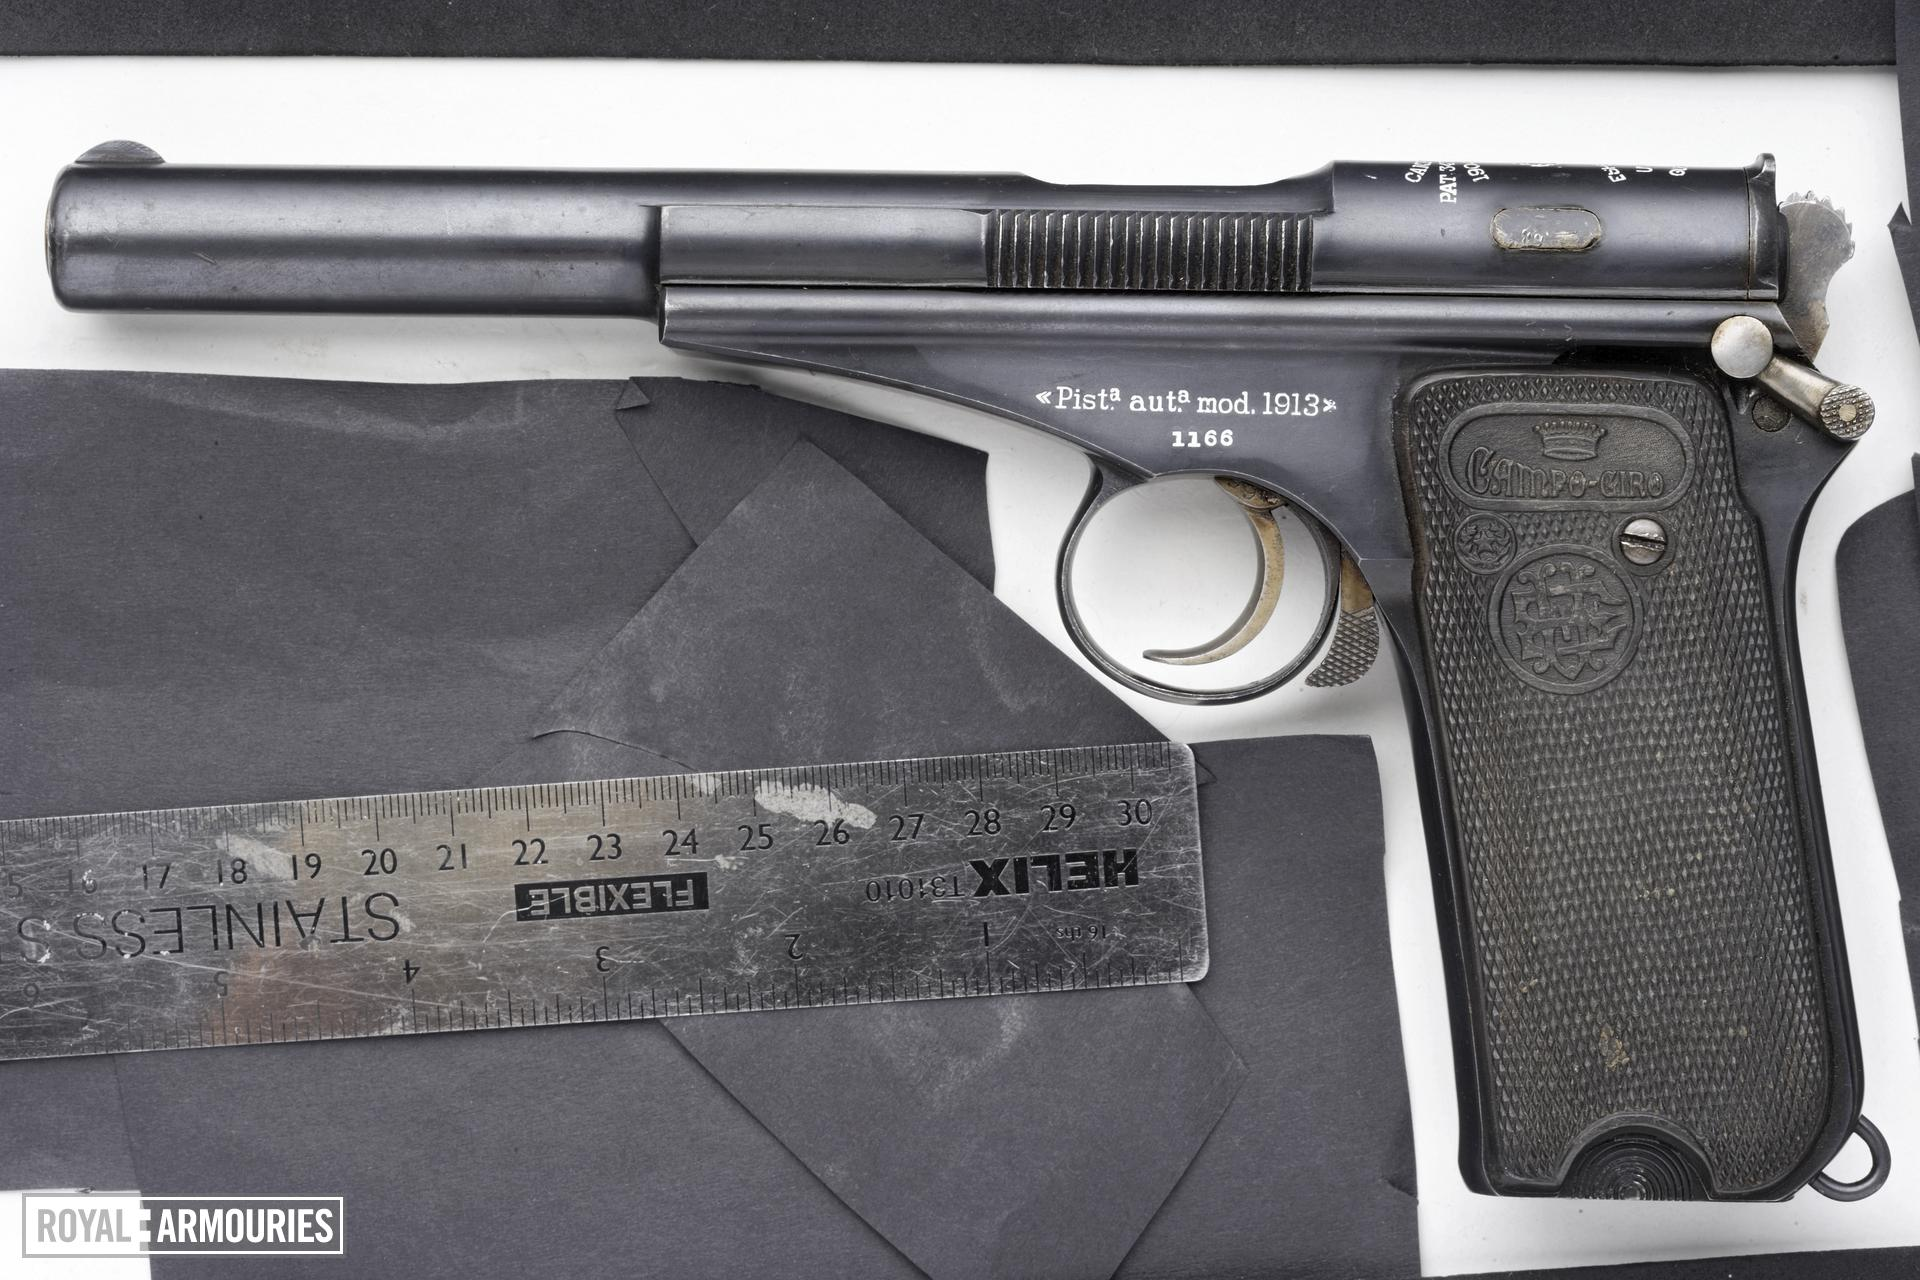 Centrefire self-loading pistol - Campo Giro Model 1913